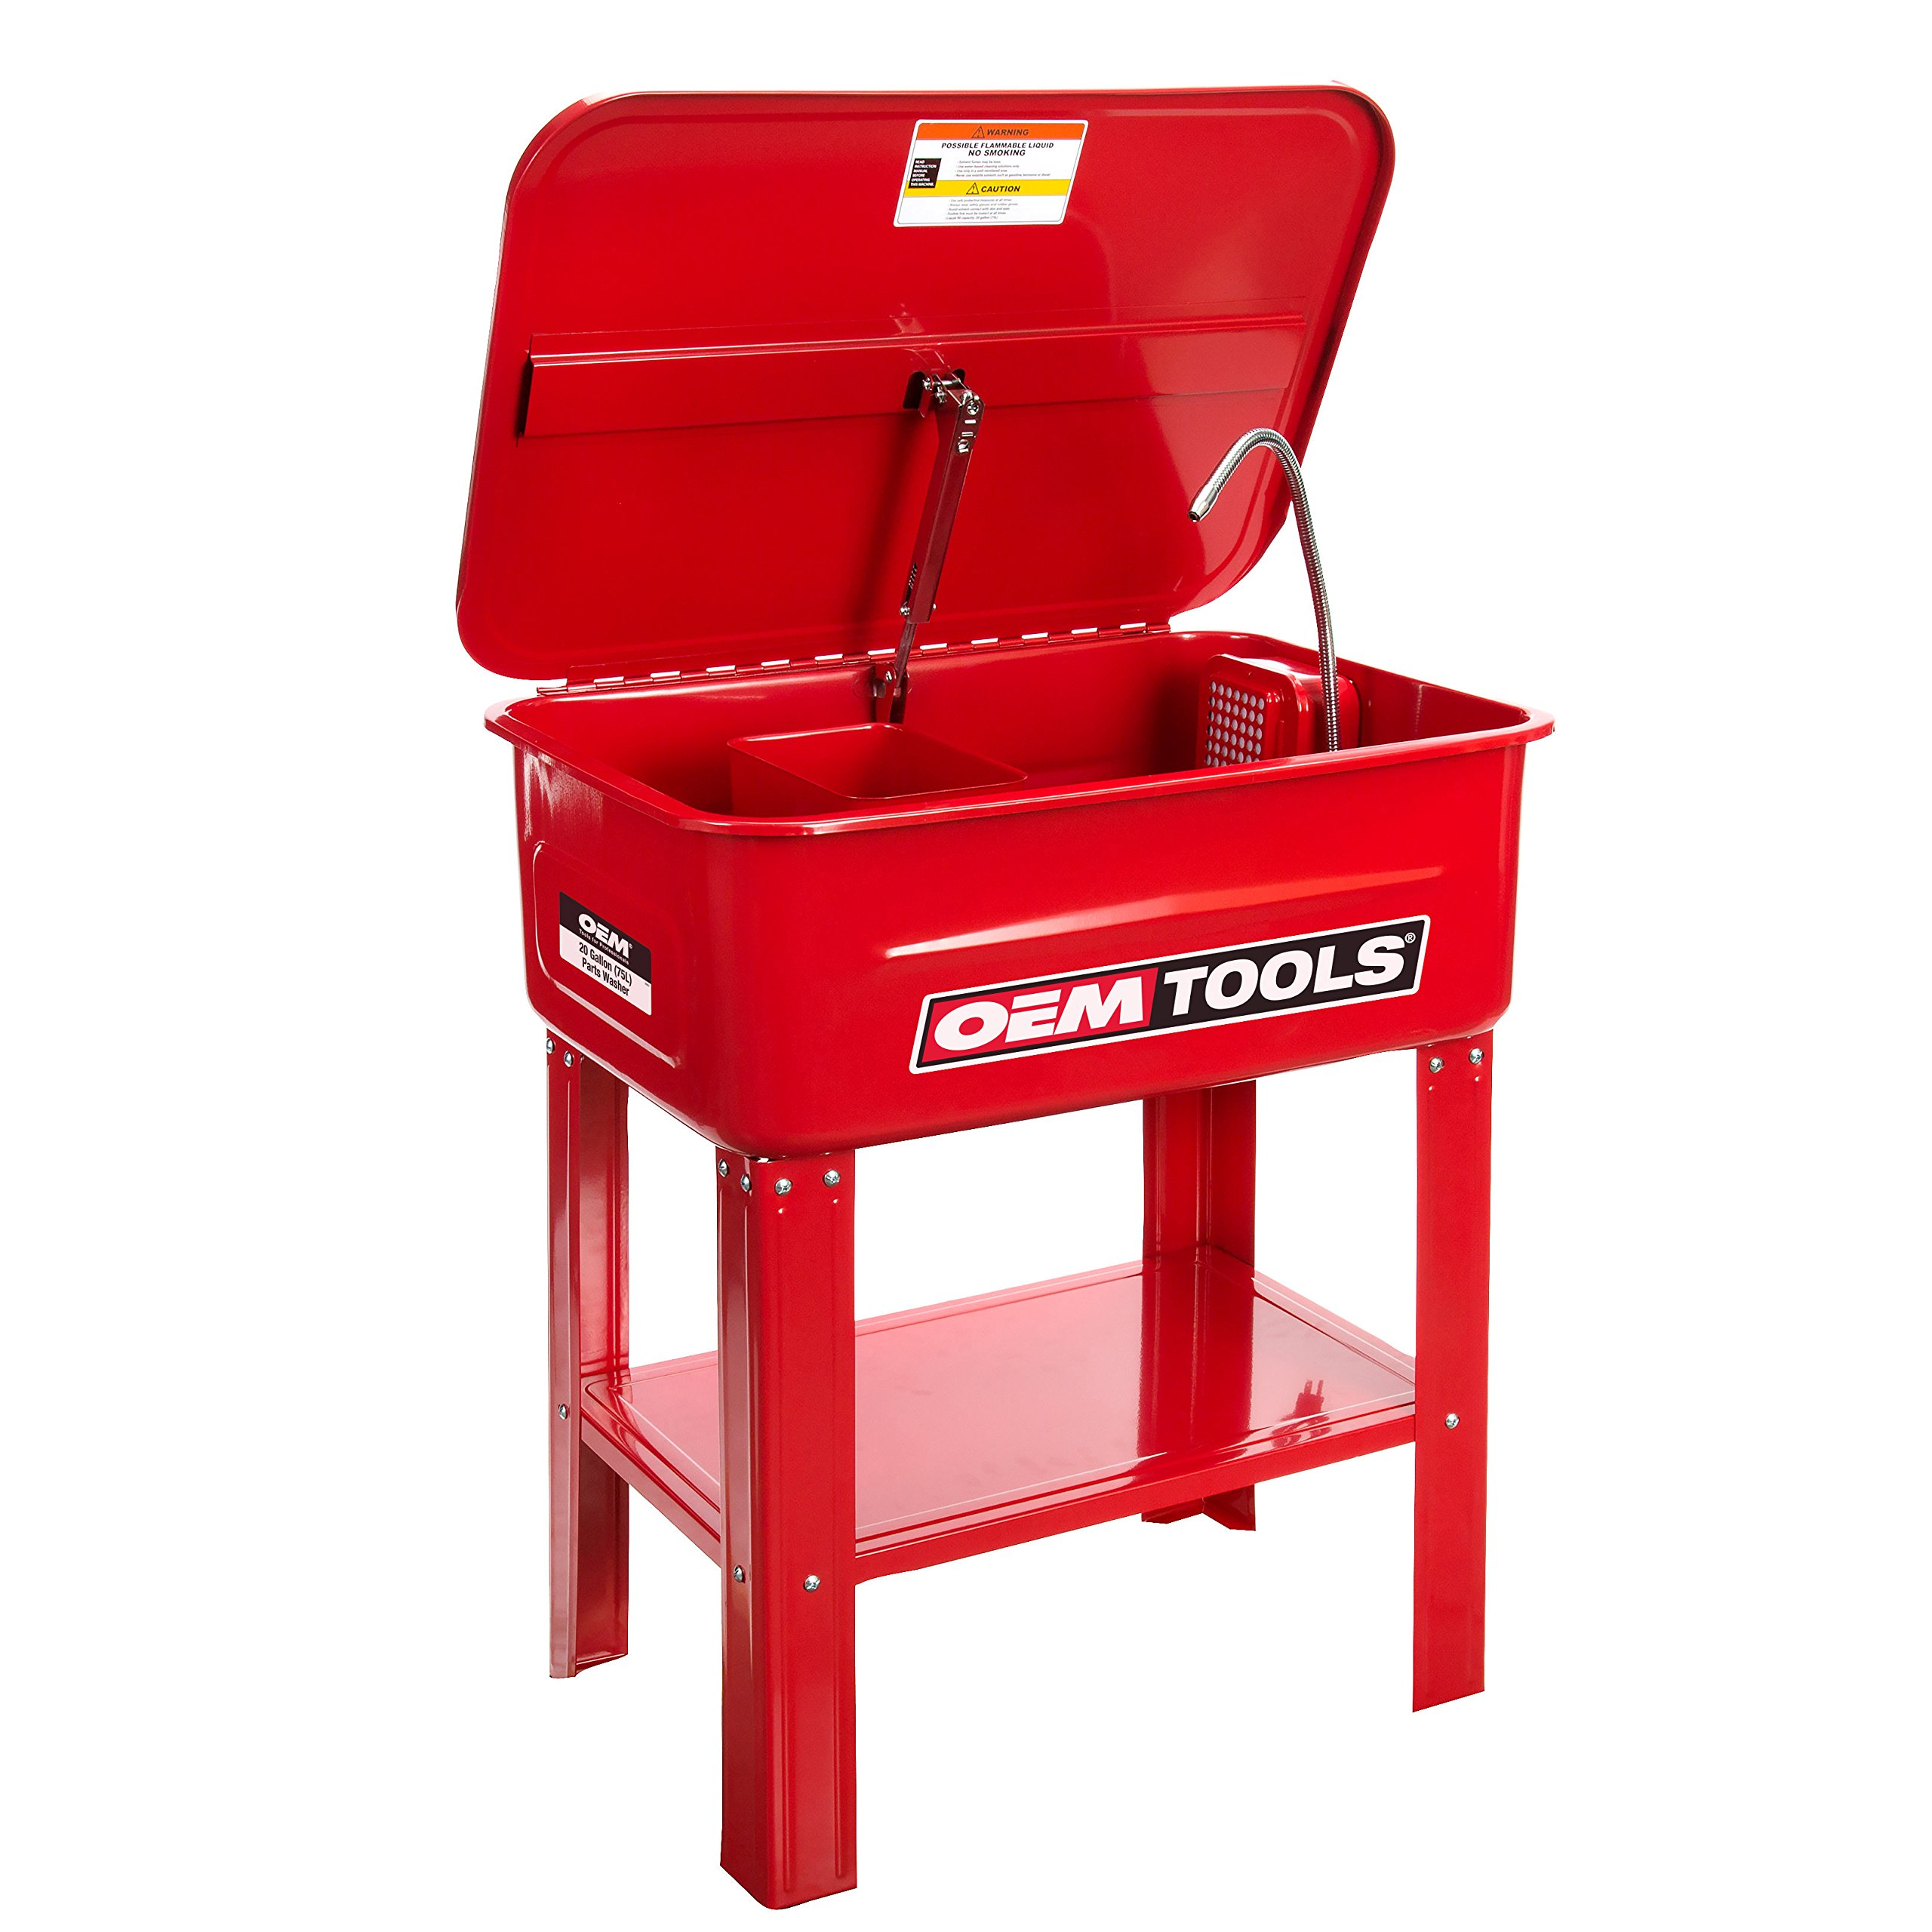 OEMTOOLS 24801 Parts Washer 20 gallon